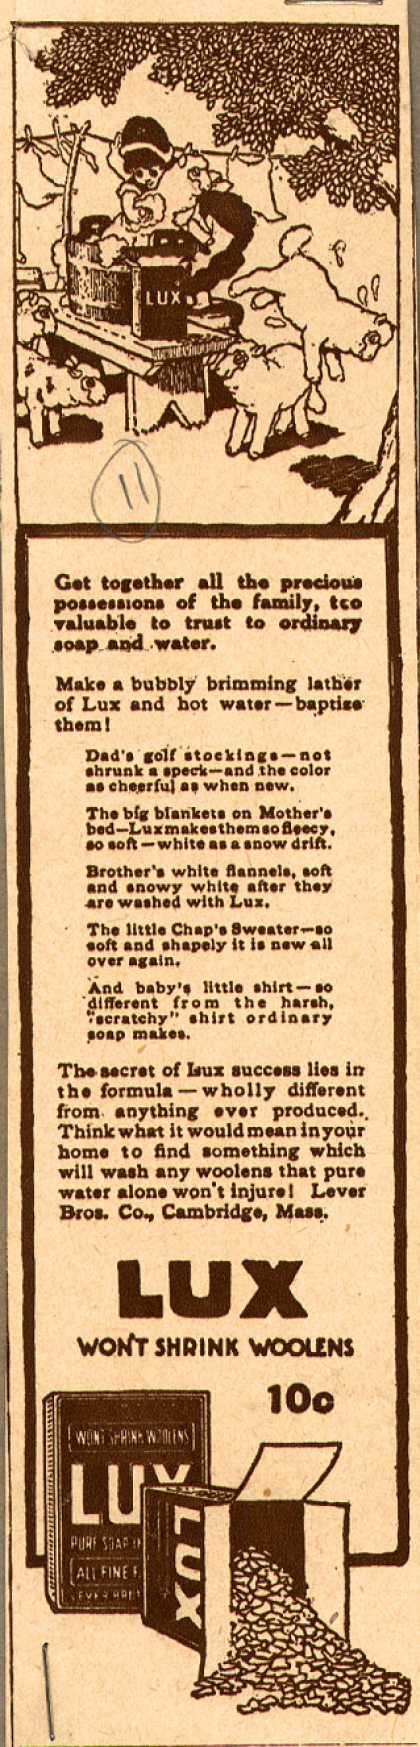 Lever Bros.'s Lux (laundry flakes) – Lux Won't Shrink Woolens (1916)